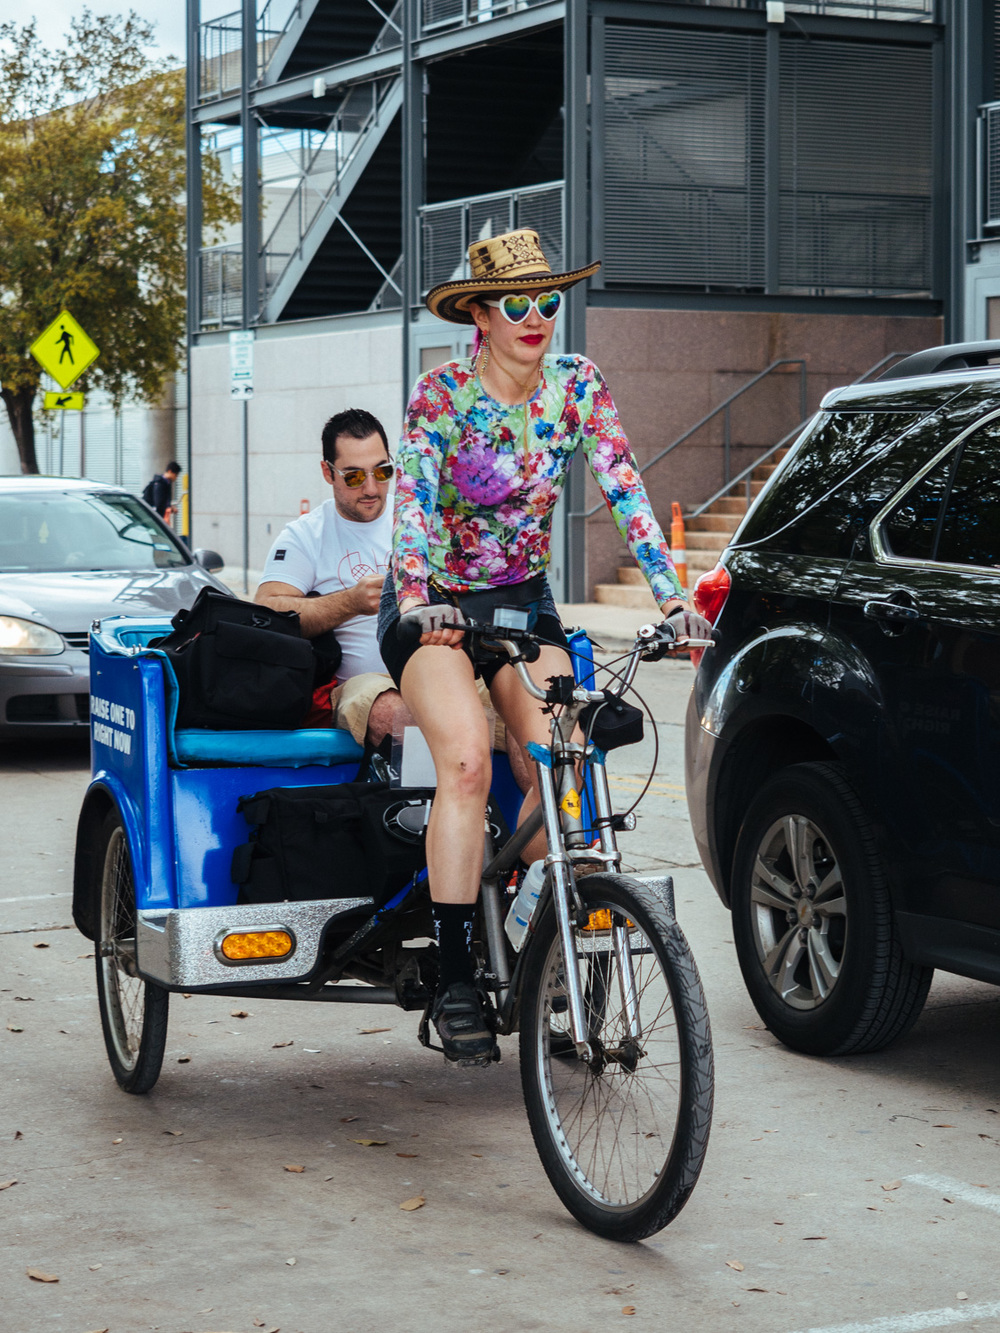 Pedicab in Austin